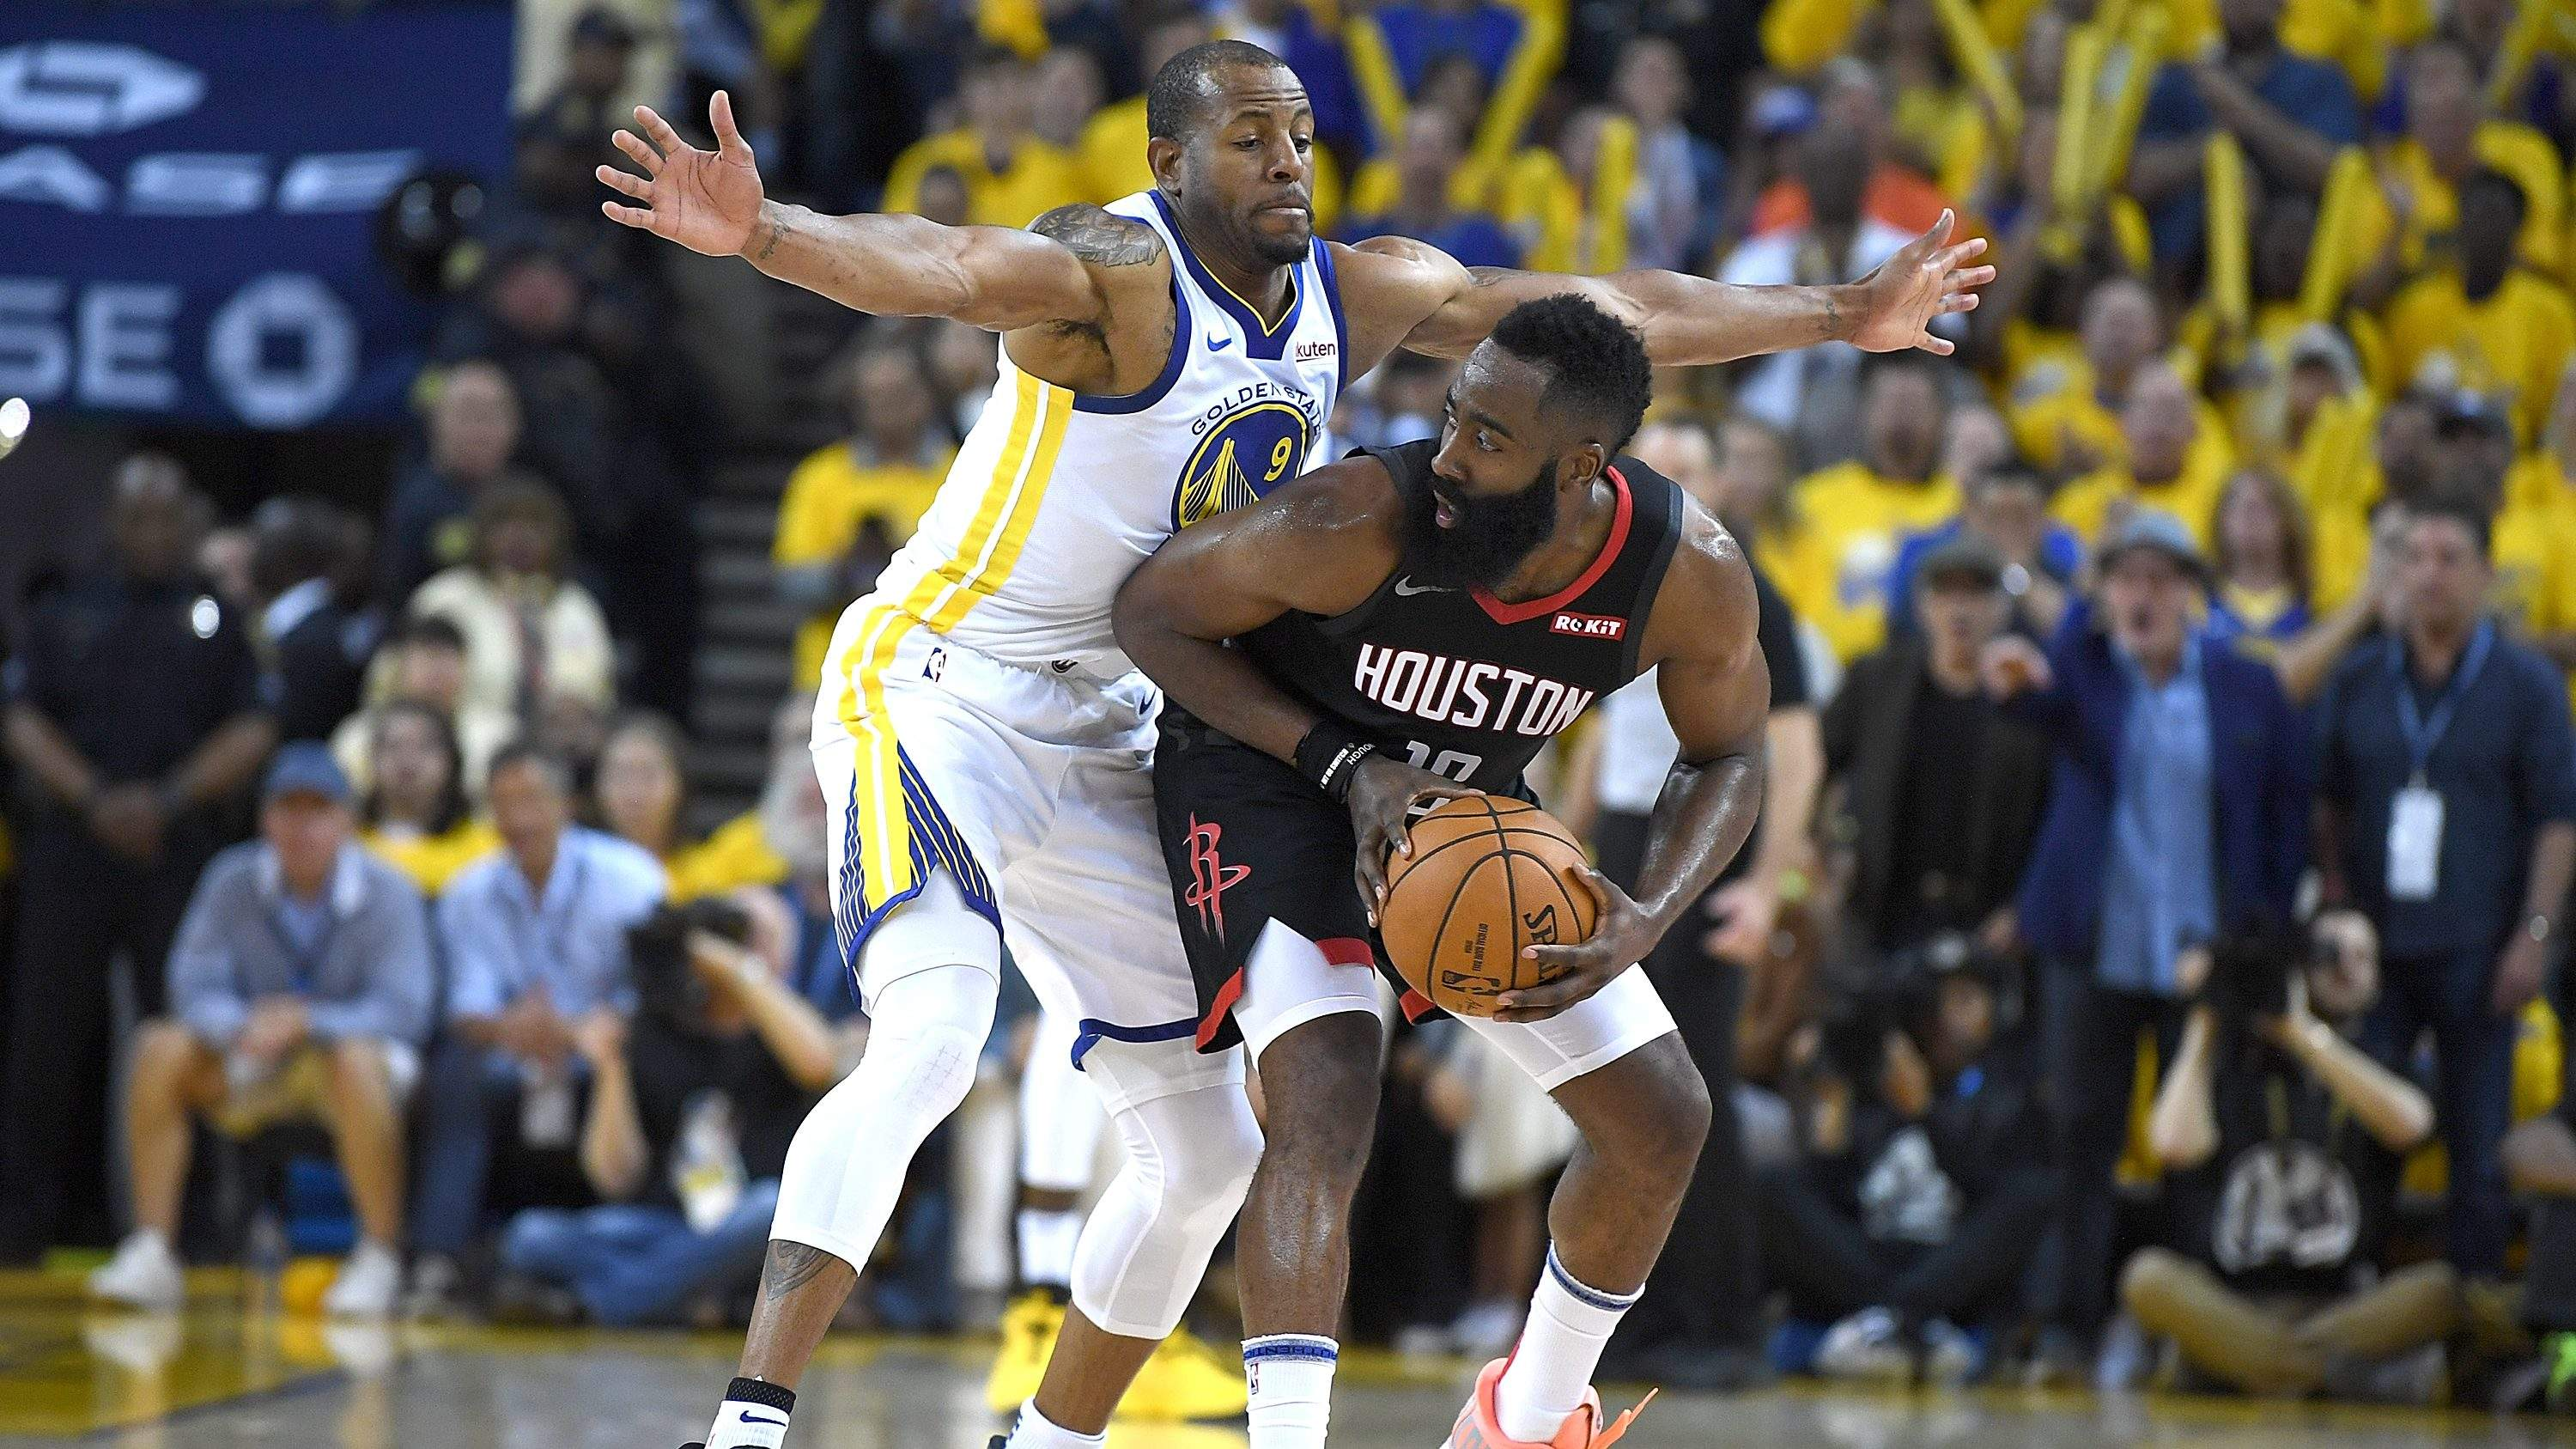 warriors vs rockets game 3 free expert predictions and picks for game 3